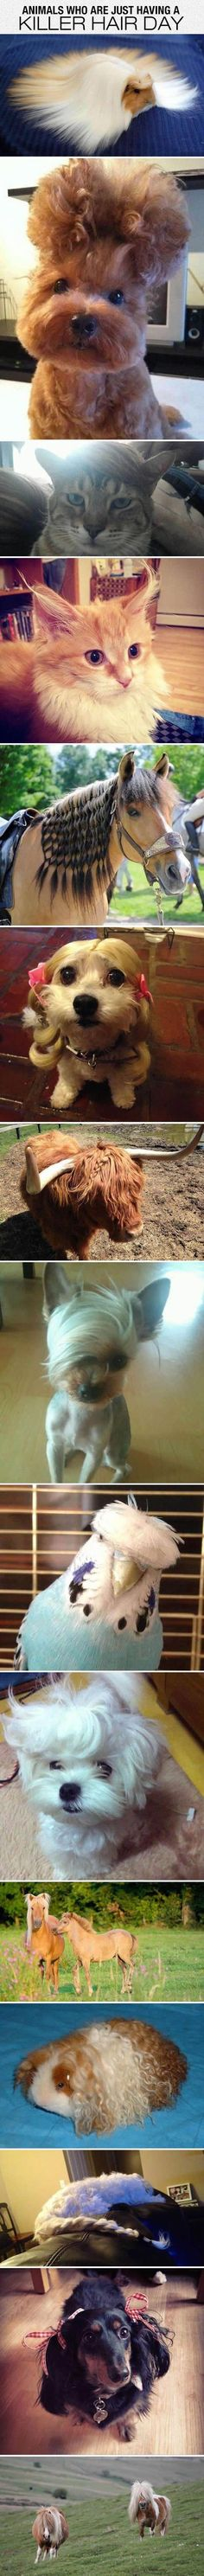 Animals Who Are Having A Killer Hair Day cute animals dogs cat cats adorable dog puppy animal pets horse kitten funny animals funny pets funny cats funny dogs